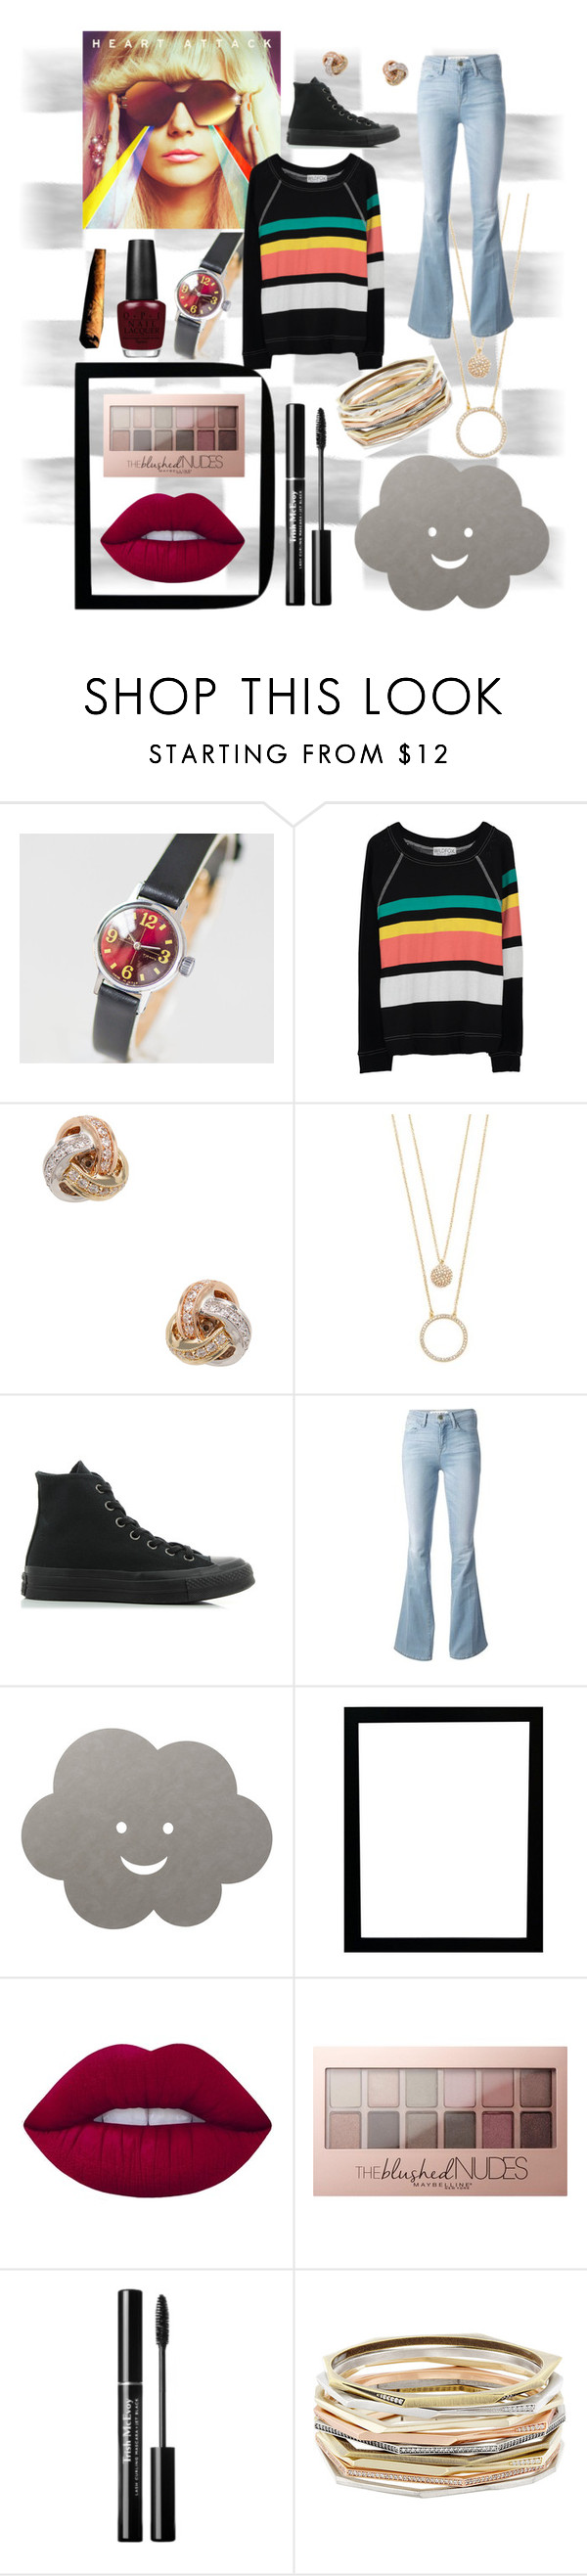 """""""Untitled #219"""" by brib978 ❤ liked on Polyvore featuring Wildfox, Nephora, Kate Spade, Converse, Frame, LIND DNA, Lime Crime, Maybelline, Kendra Scott and OPI"""